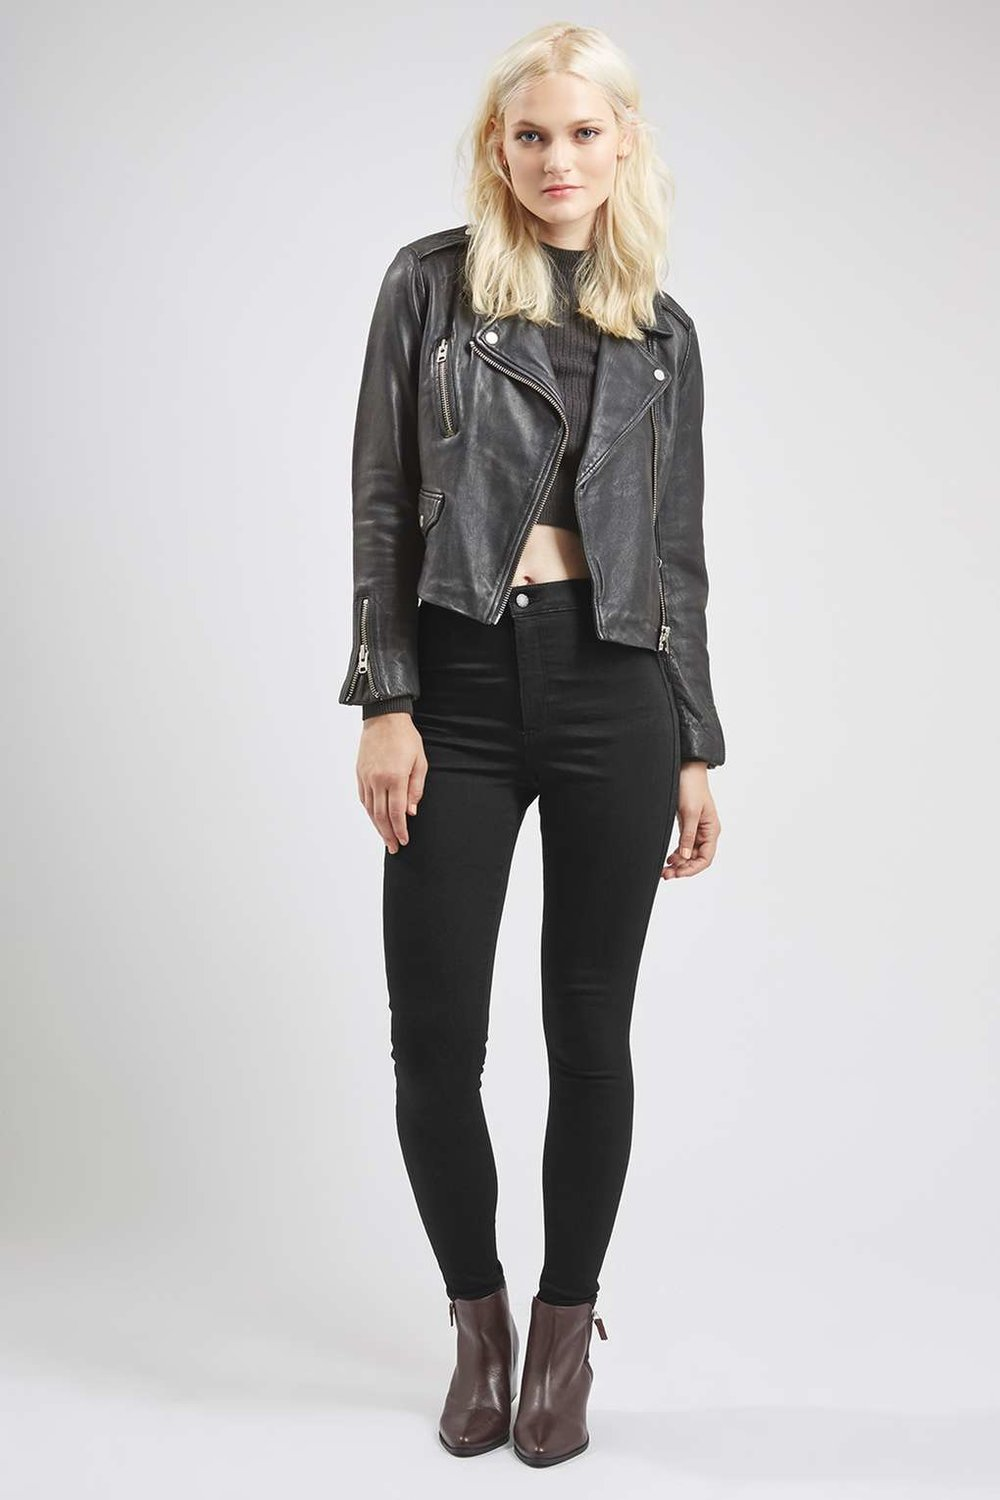 Topshop MOTO Holding Power Joni Jeans in Black £45.00 ( click to buy )